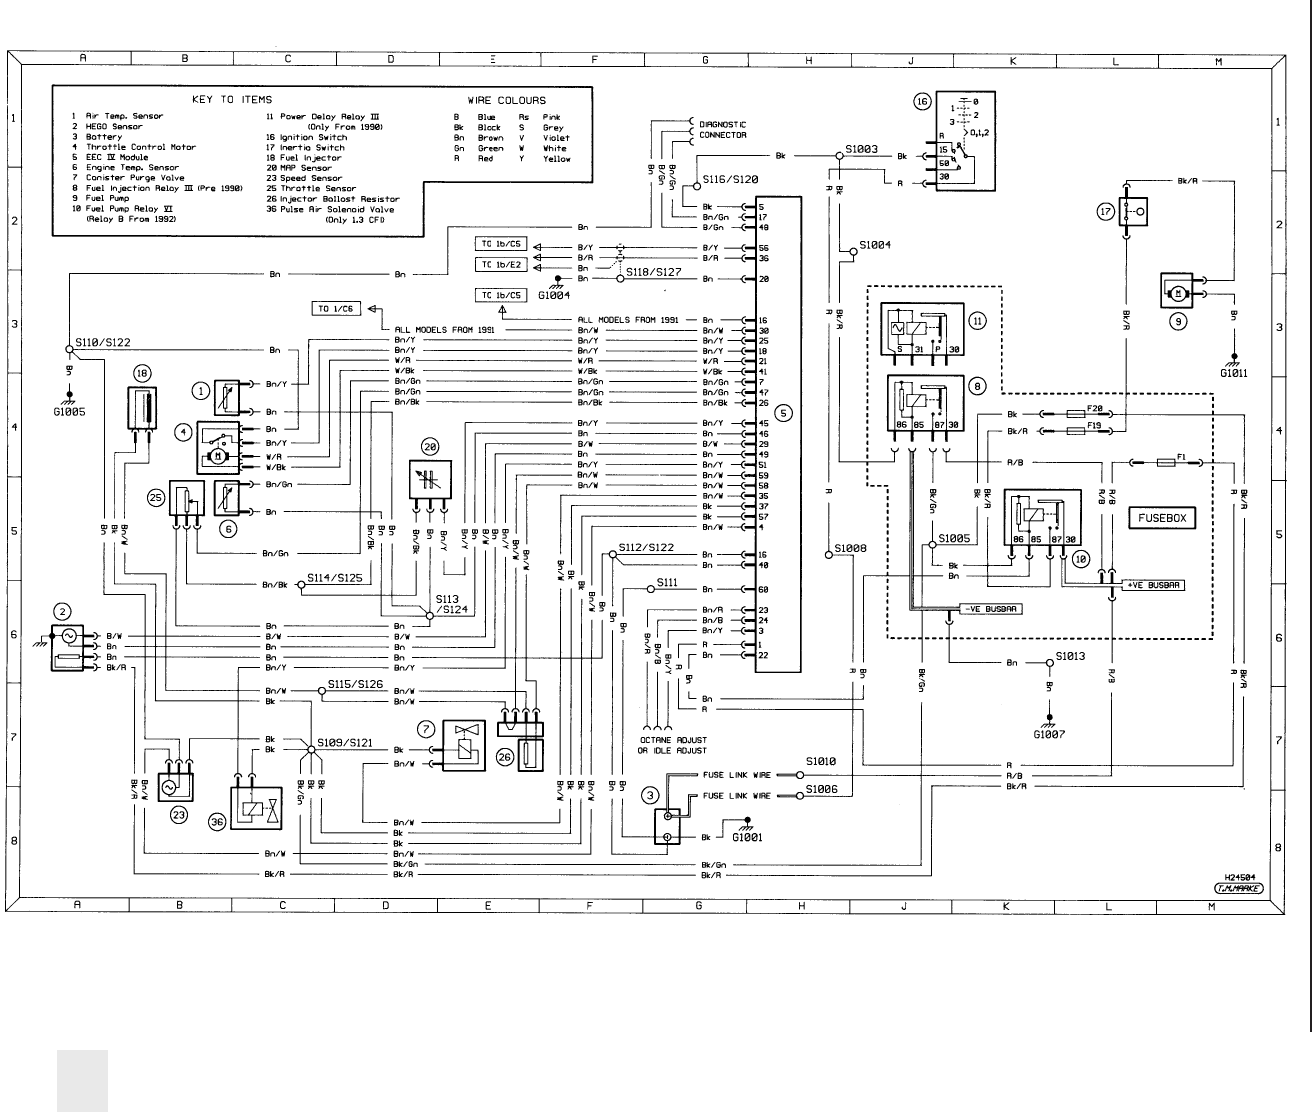 Amc 258 Pcv Wiring Diagrams additionally Bosch HEI further Engine Diagrams 1997 Buick Lesabre 3 8l as well Distributor Cap Rotor 78168 also 1958 Ford F100 Wiring Diagram. on firing order diagram